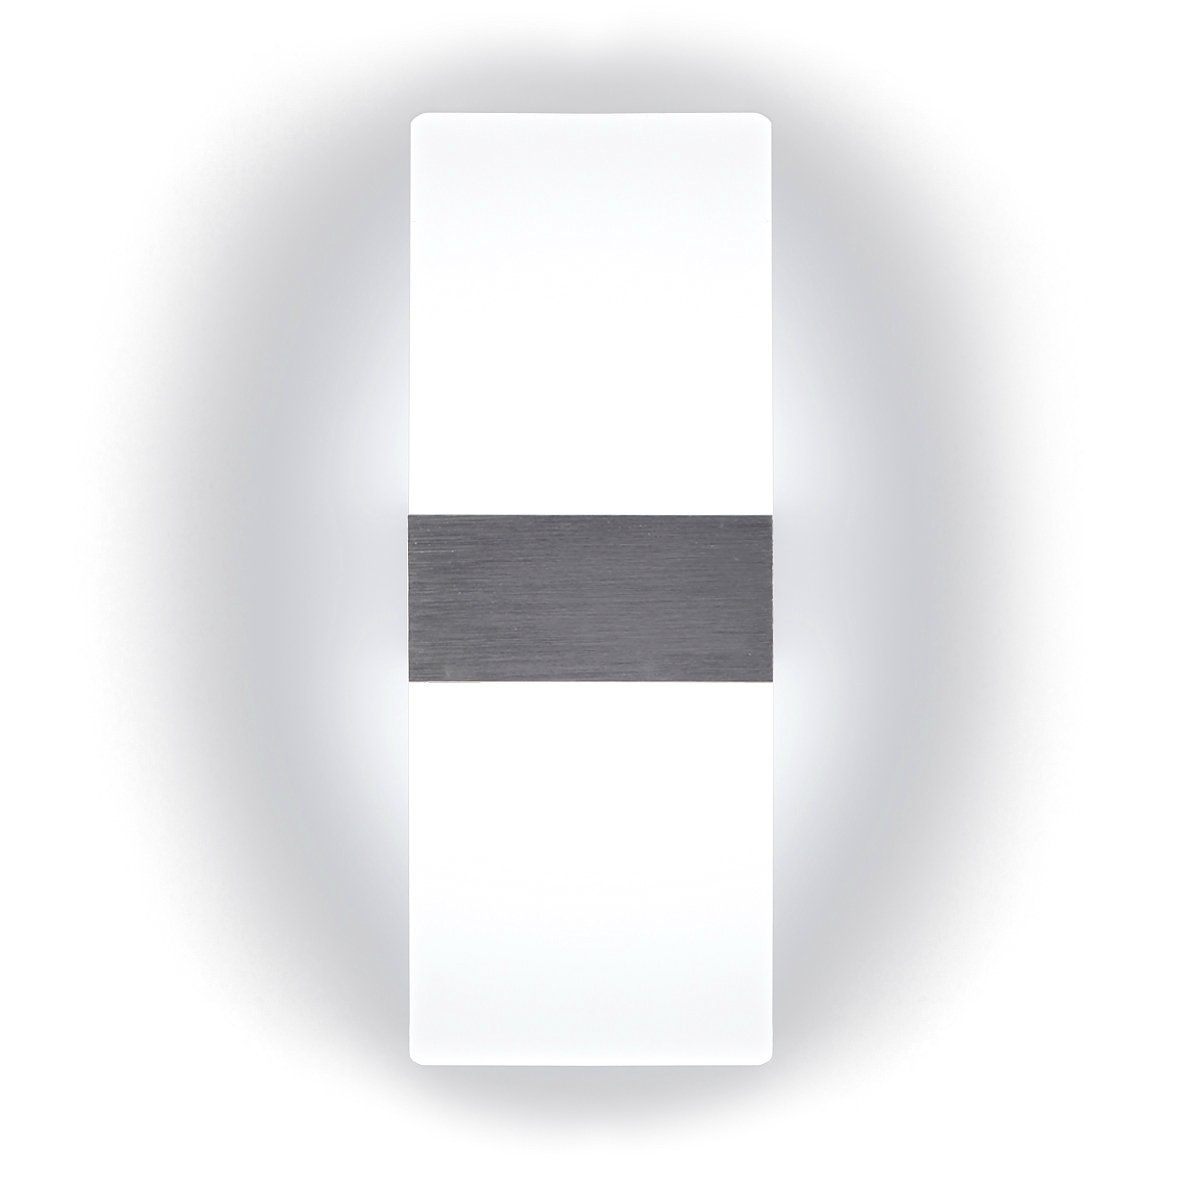 Kernorv LED Wall Sconces Light Modern and Fashion Cool White Modern Wall Sconce Decorative Lamps for Bedroom Living Room Balcony Porch Stairway Office Hotel and Hallway 11.4'' x 4.3'' (12W, 6000K)